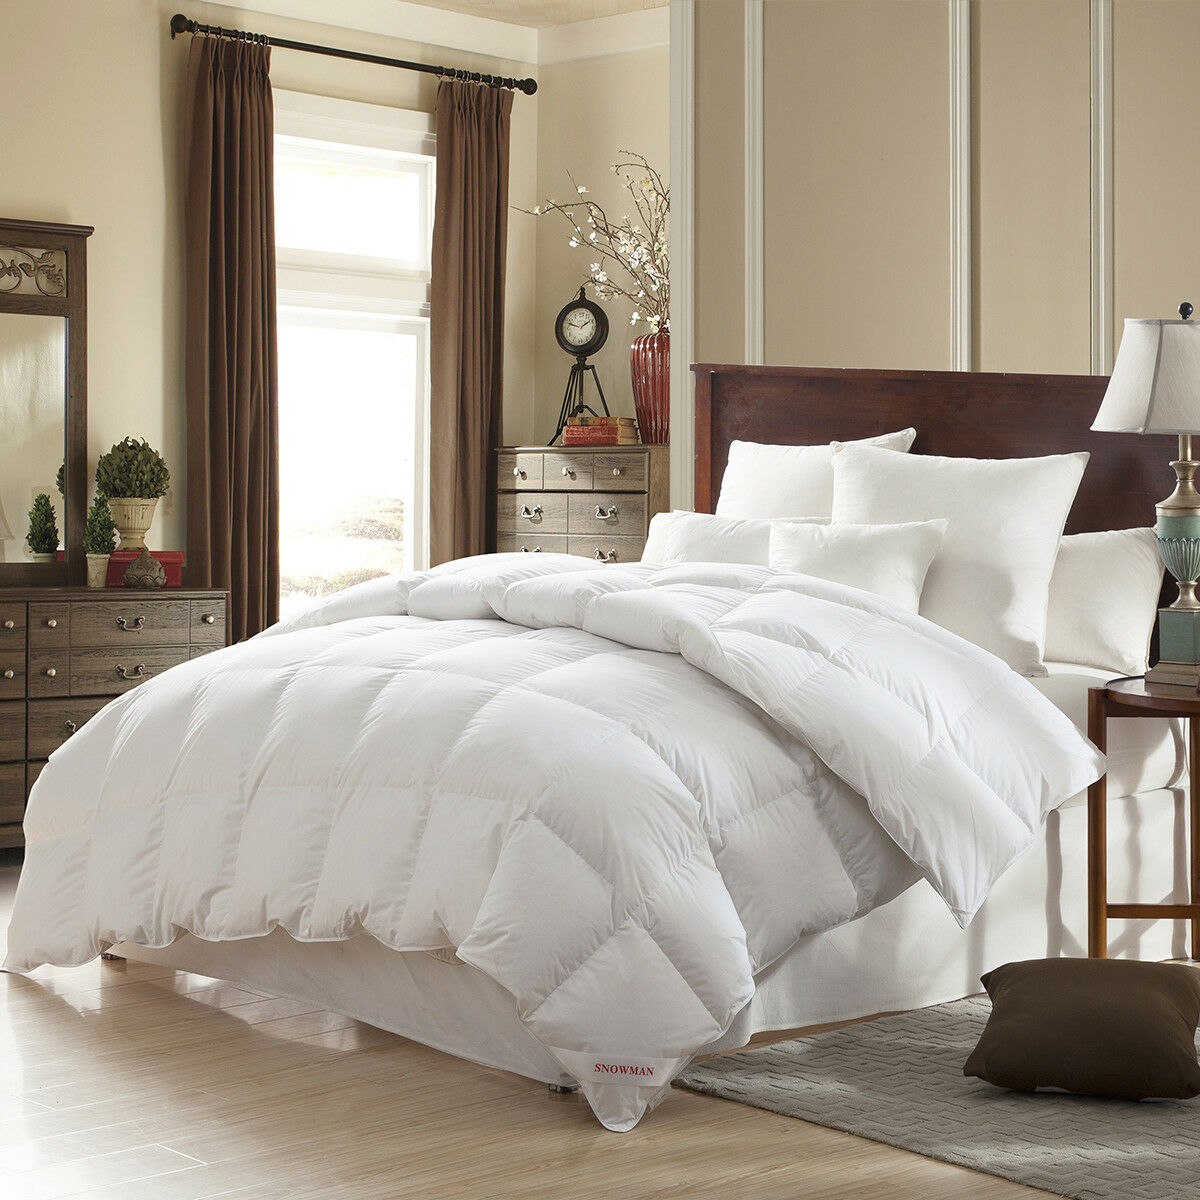 oversized king comforter sets super and fluffy goose down feather size 106x90